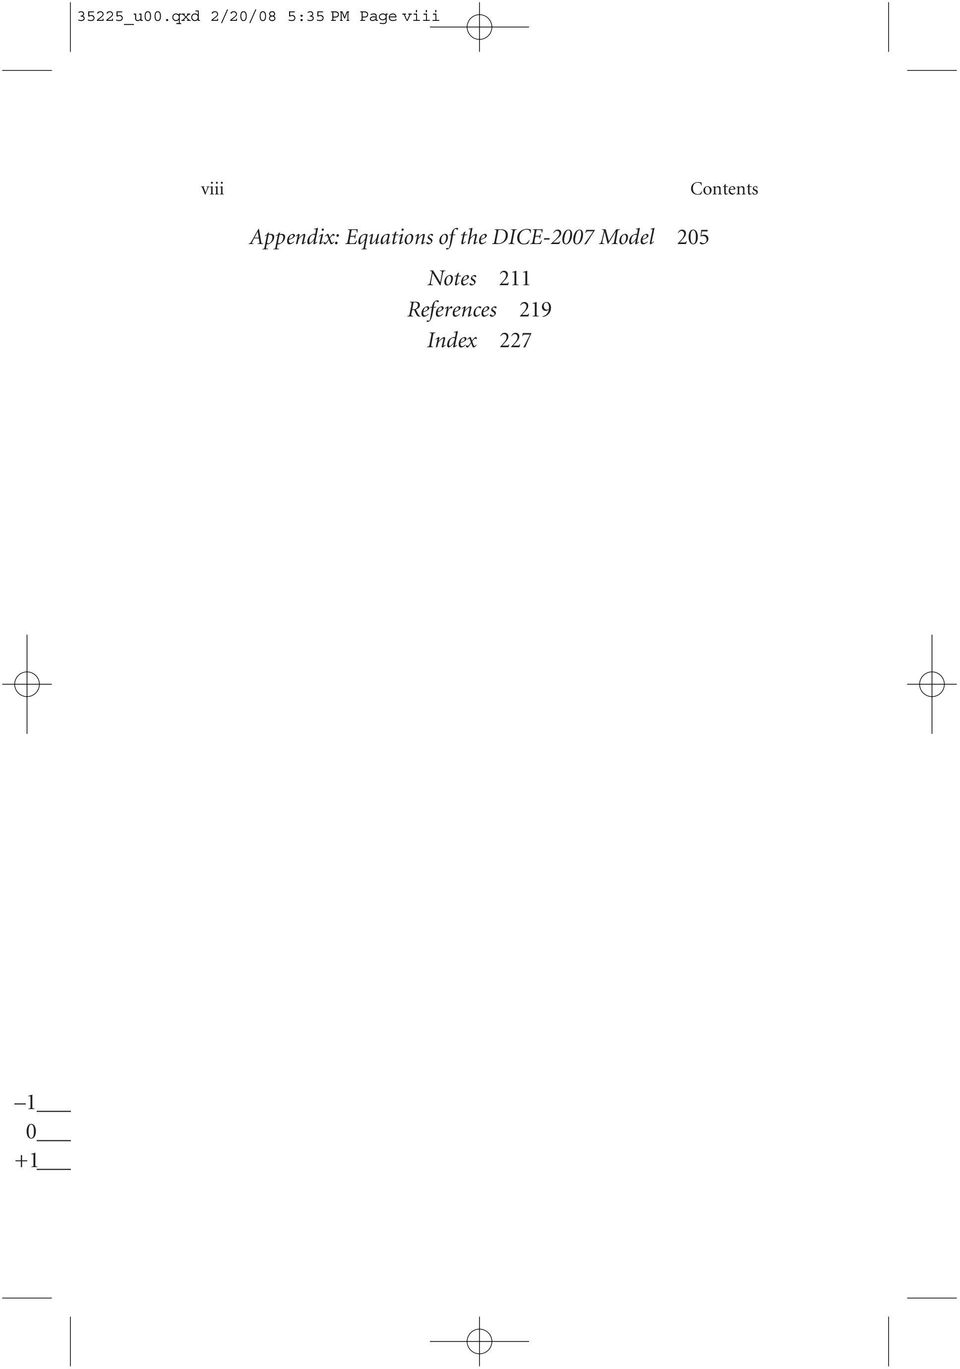 Contents Appendix: Equations of the